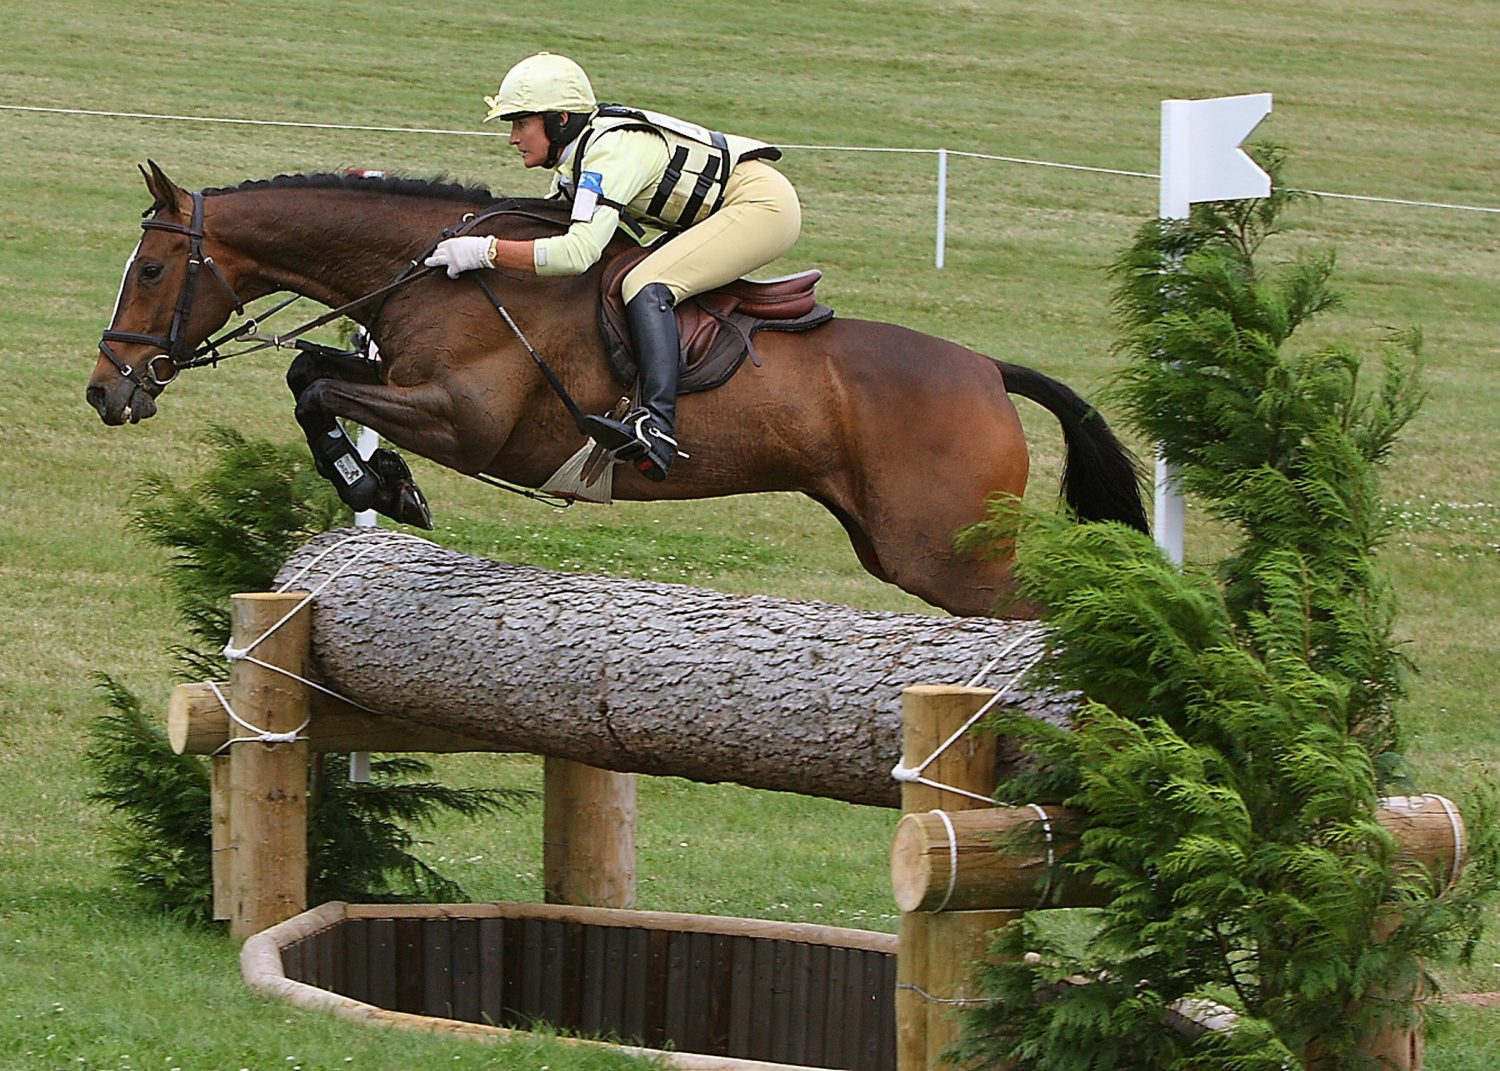 event rider lucinda green riding cross country